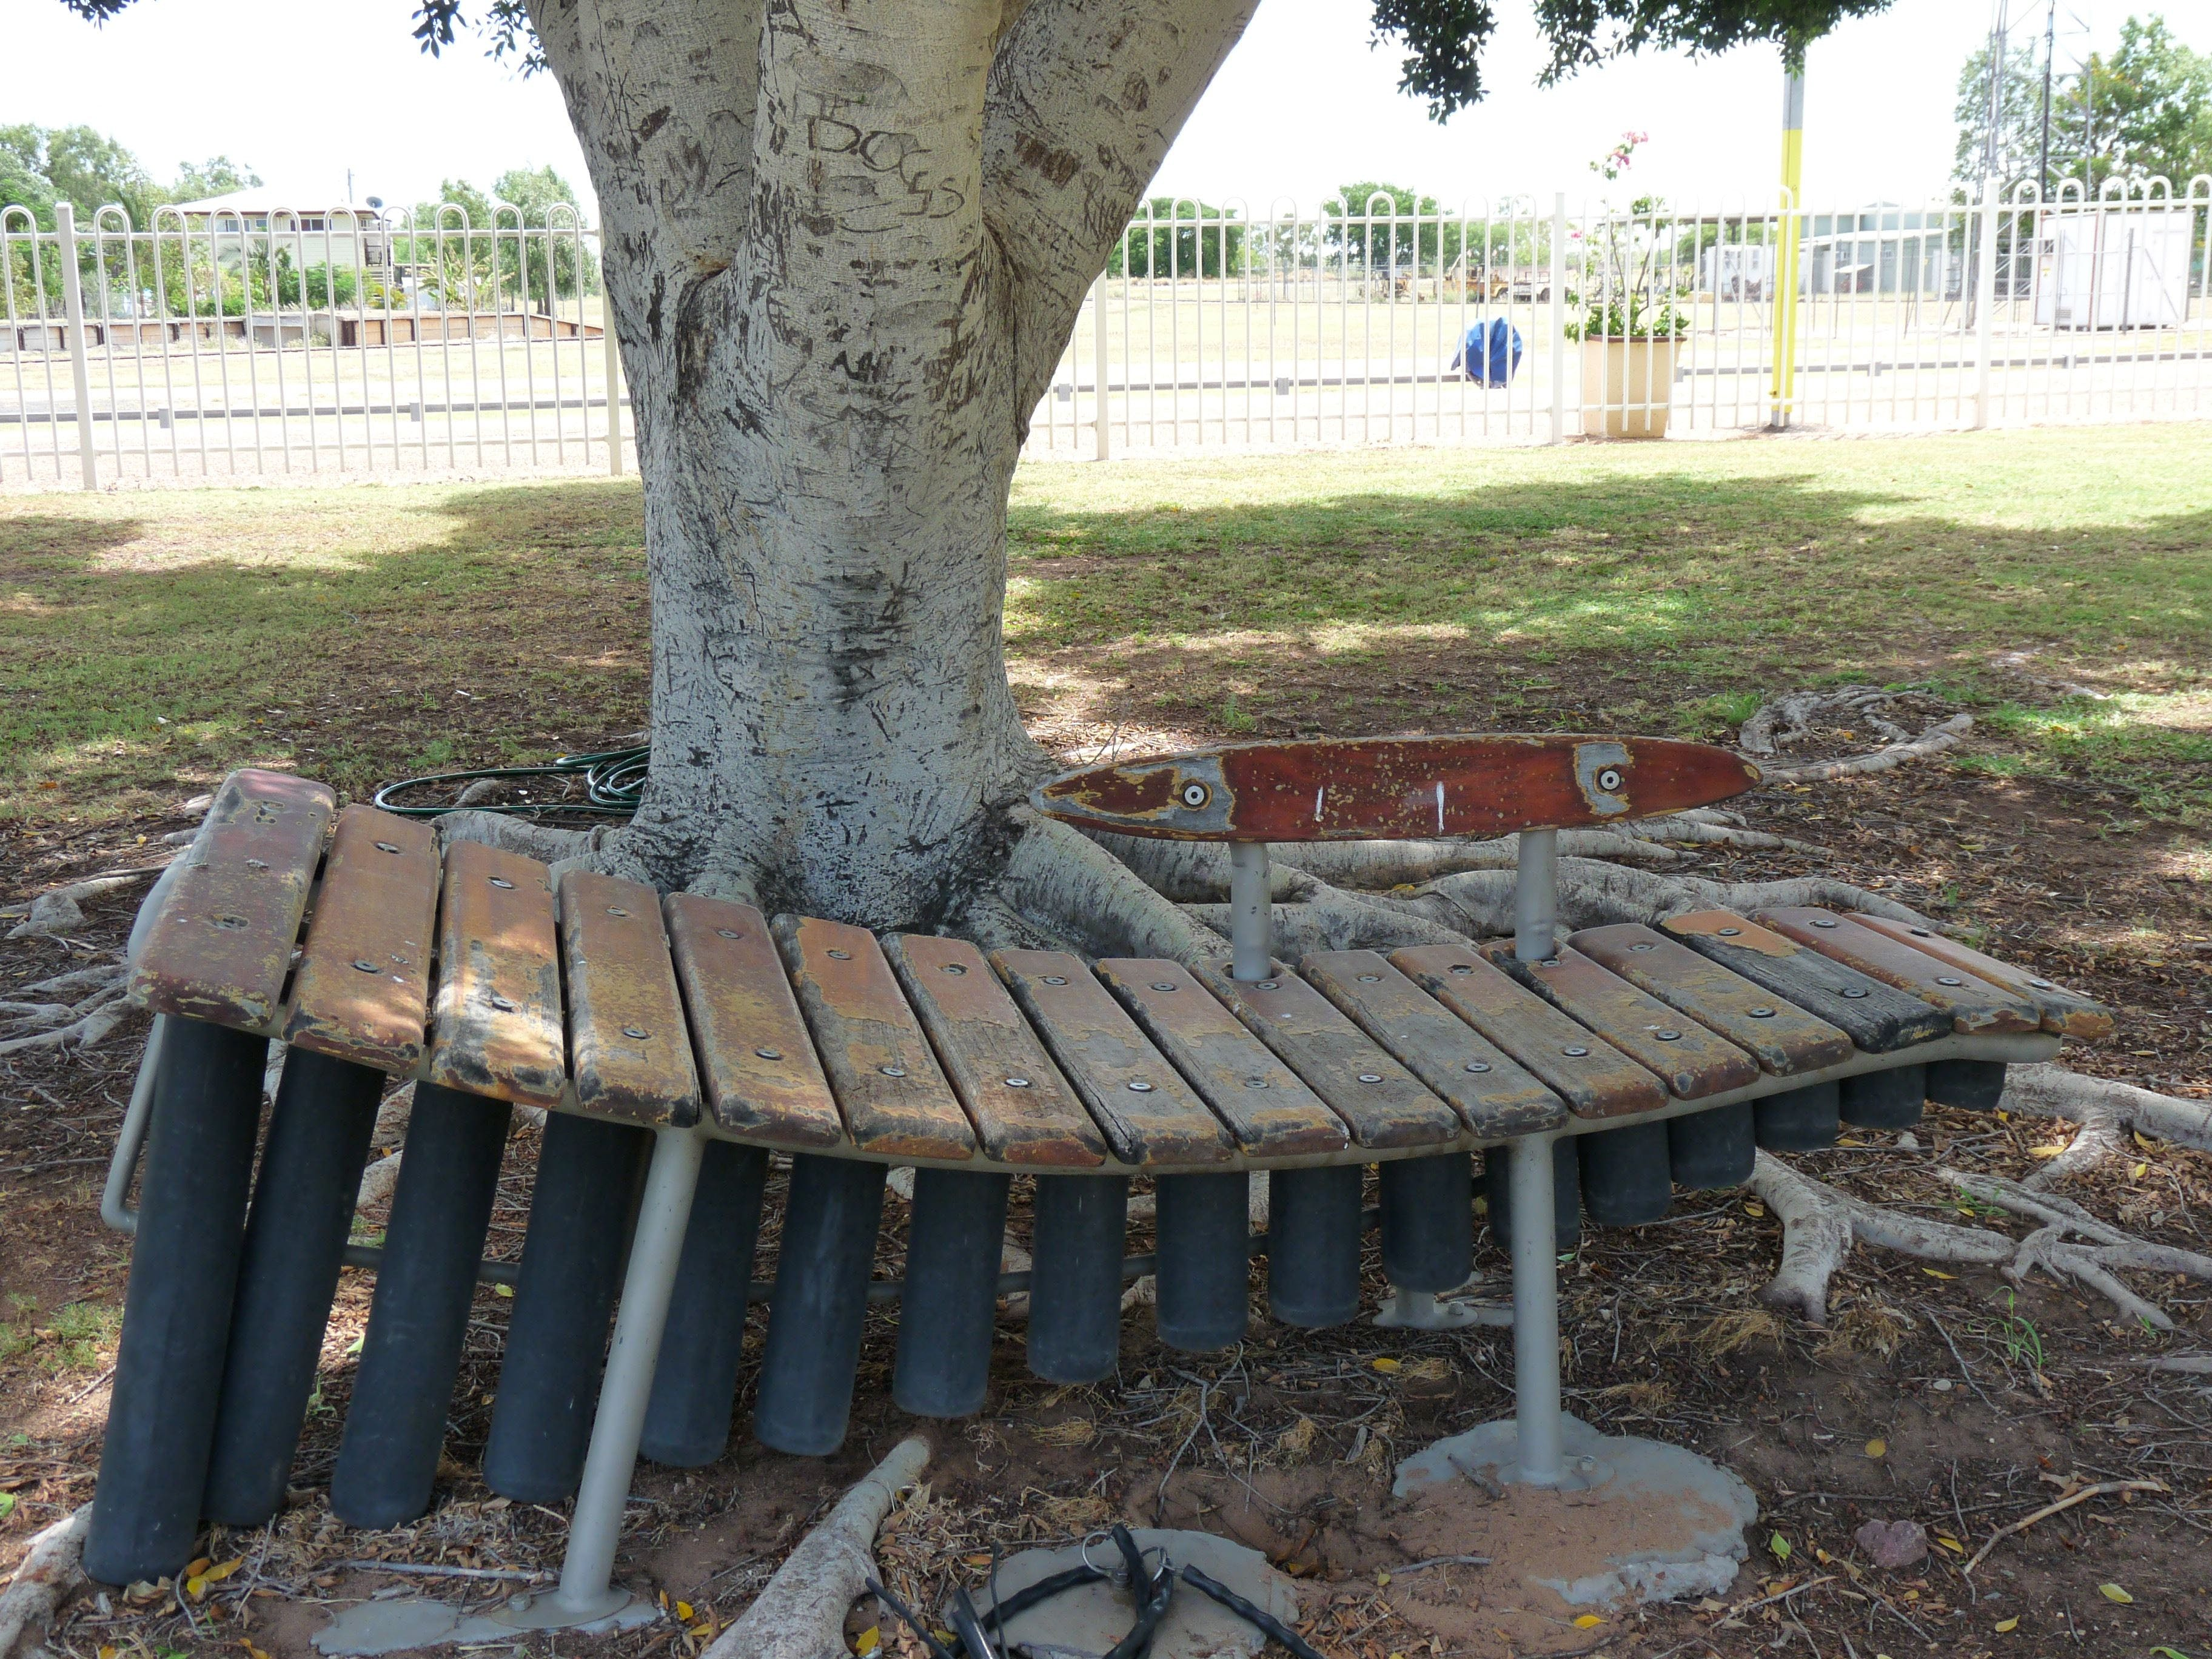 Barcaldine Musical Instruments - Find Attractions